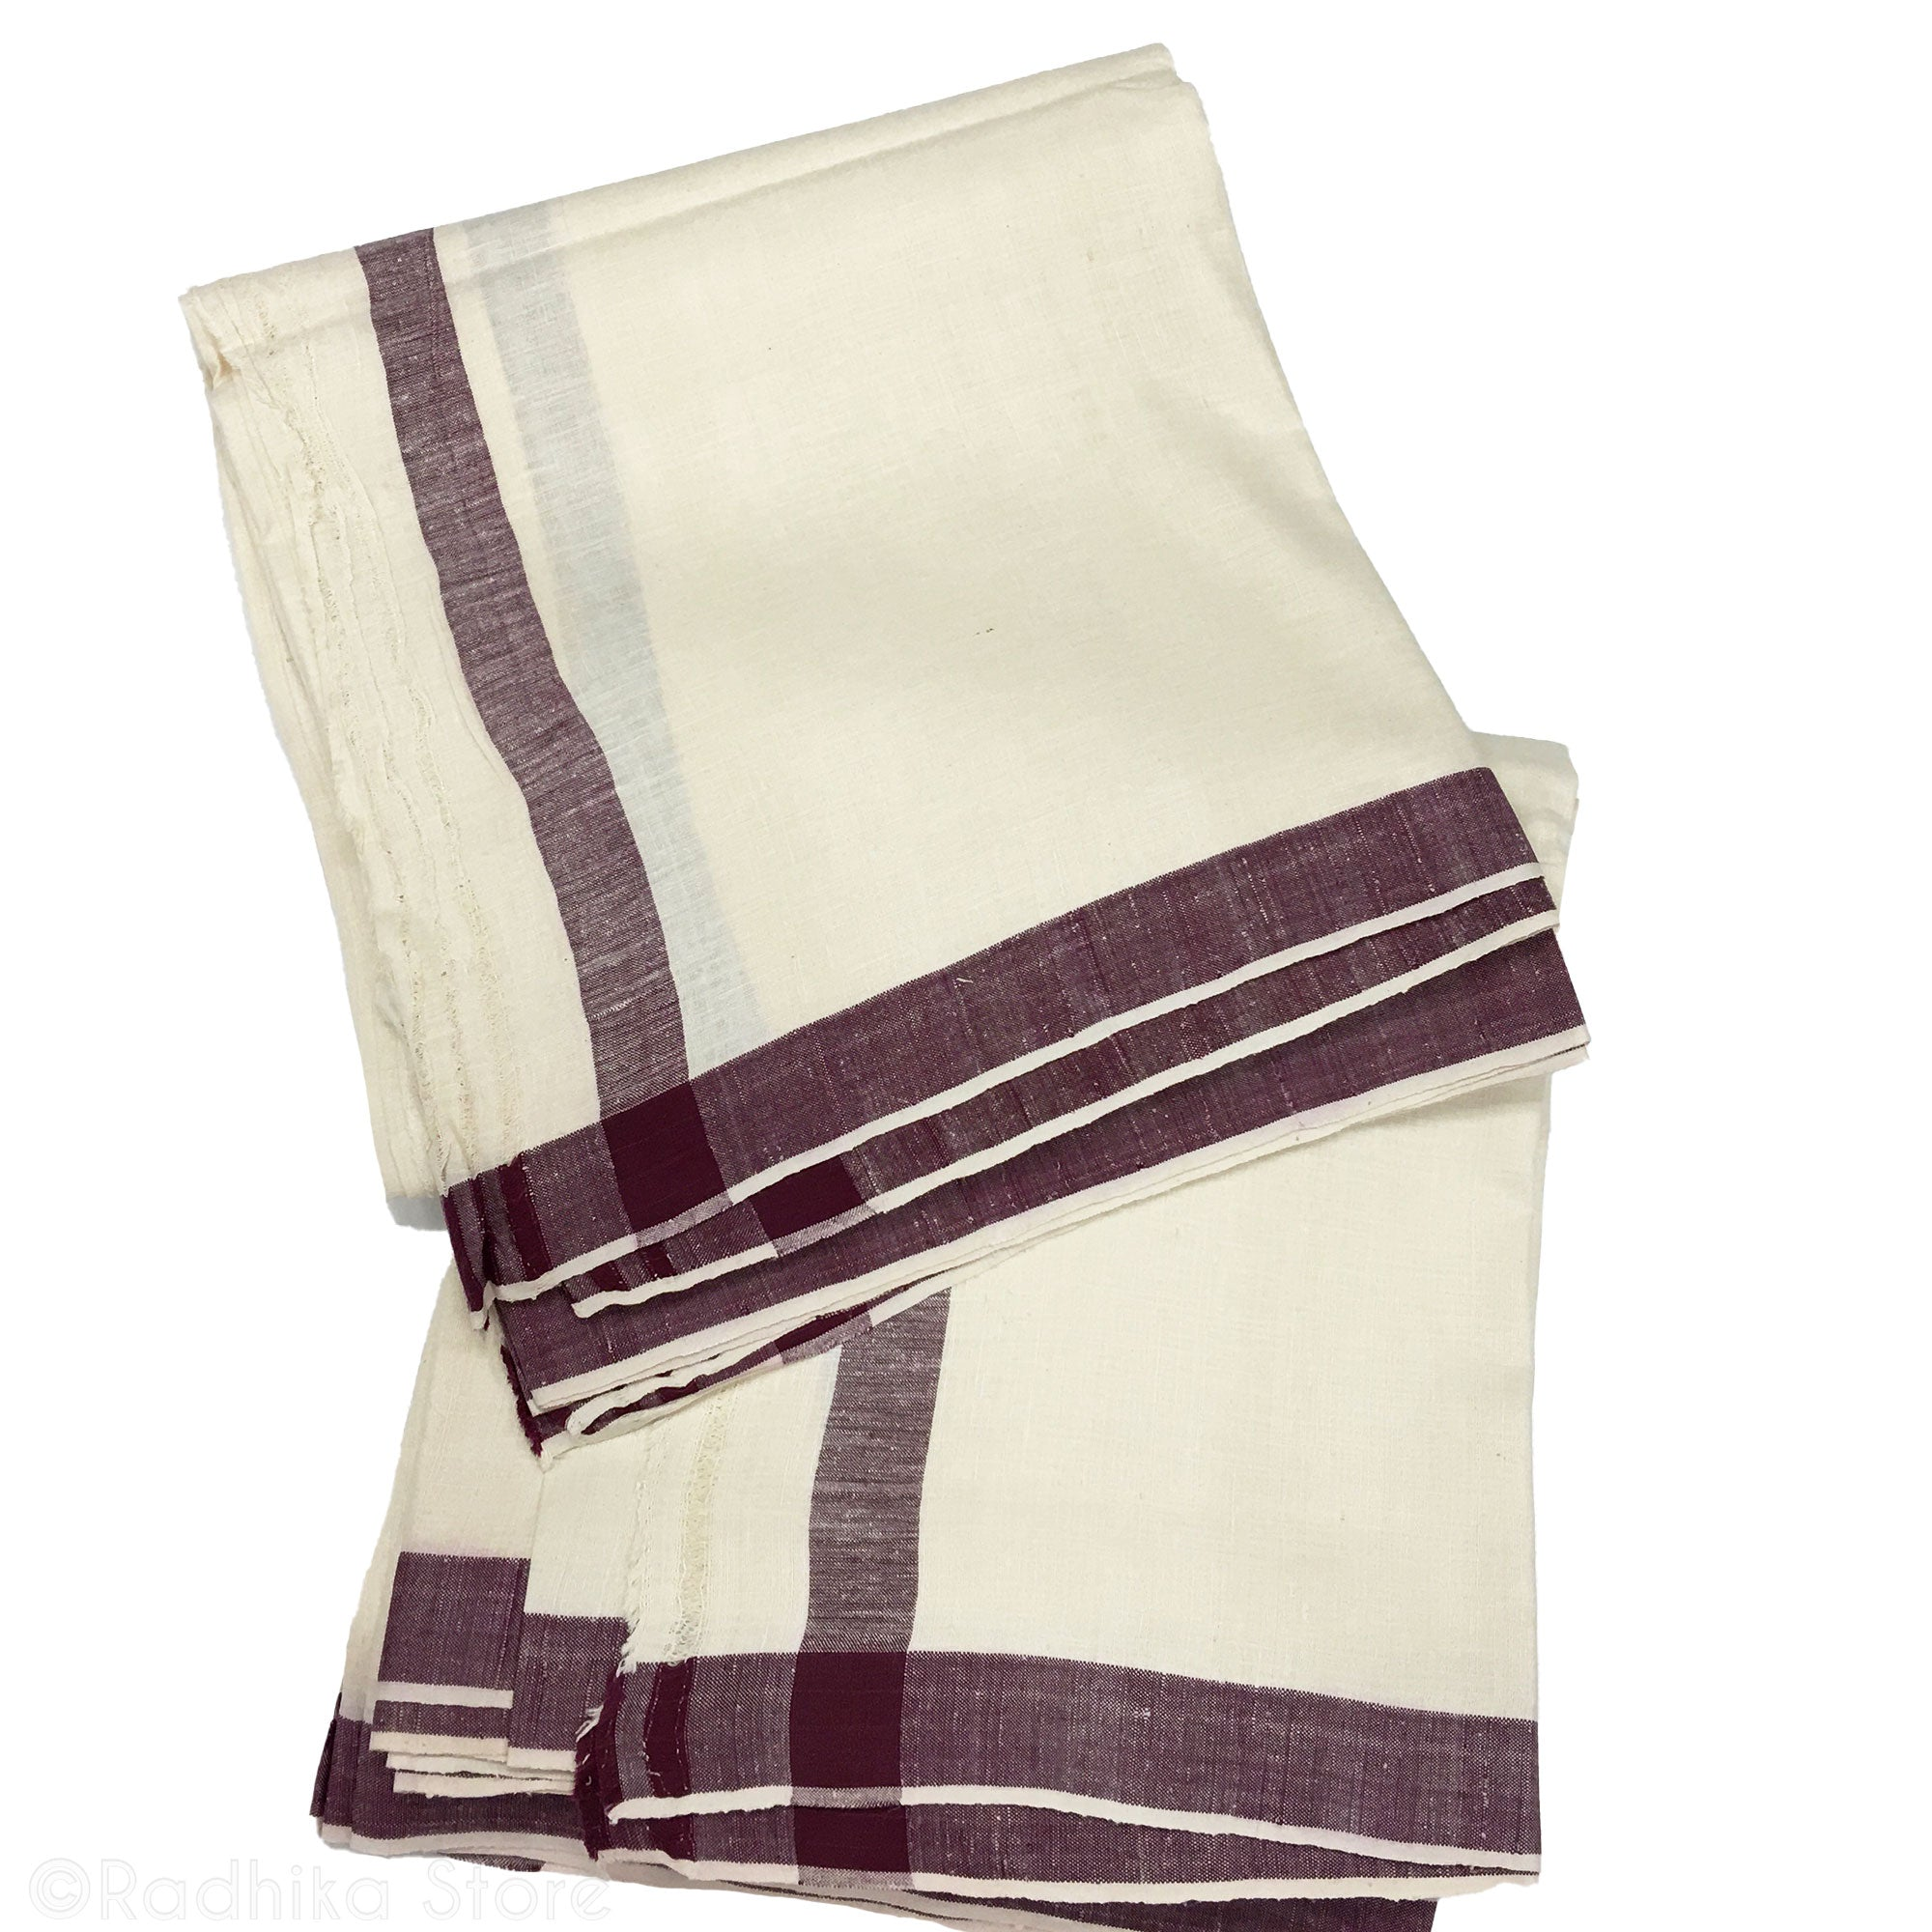 Raw Silk Dhoti And Chadar - Natural Khadi - Cream With Maroon Stripe